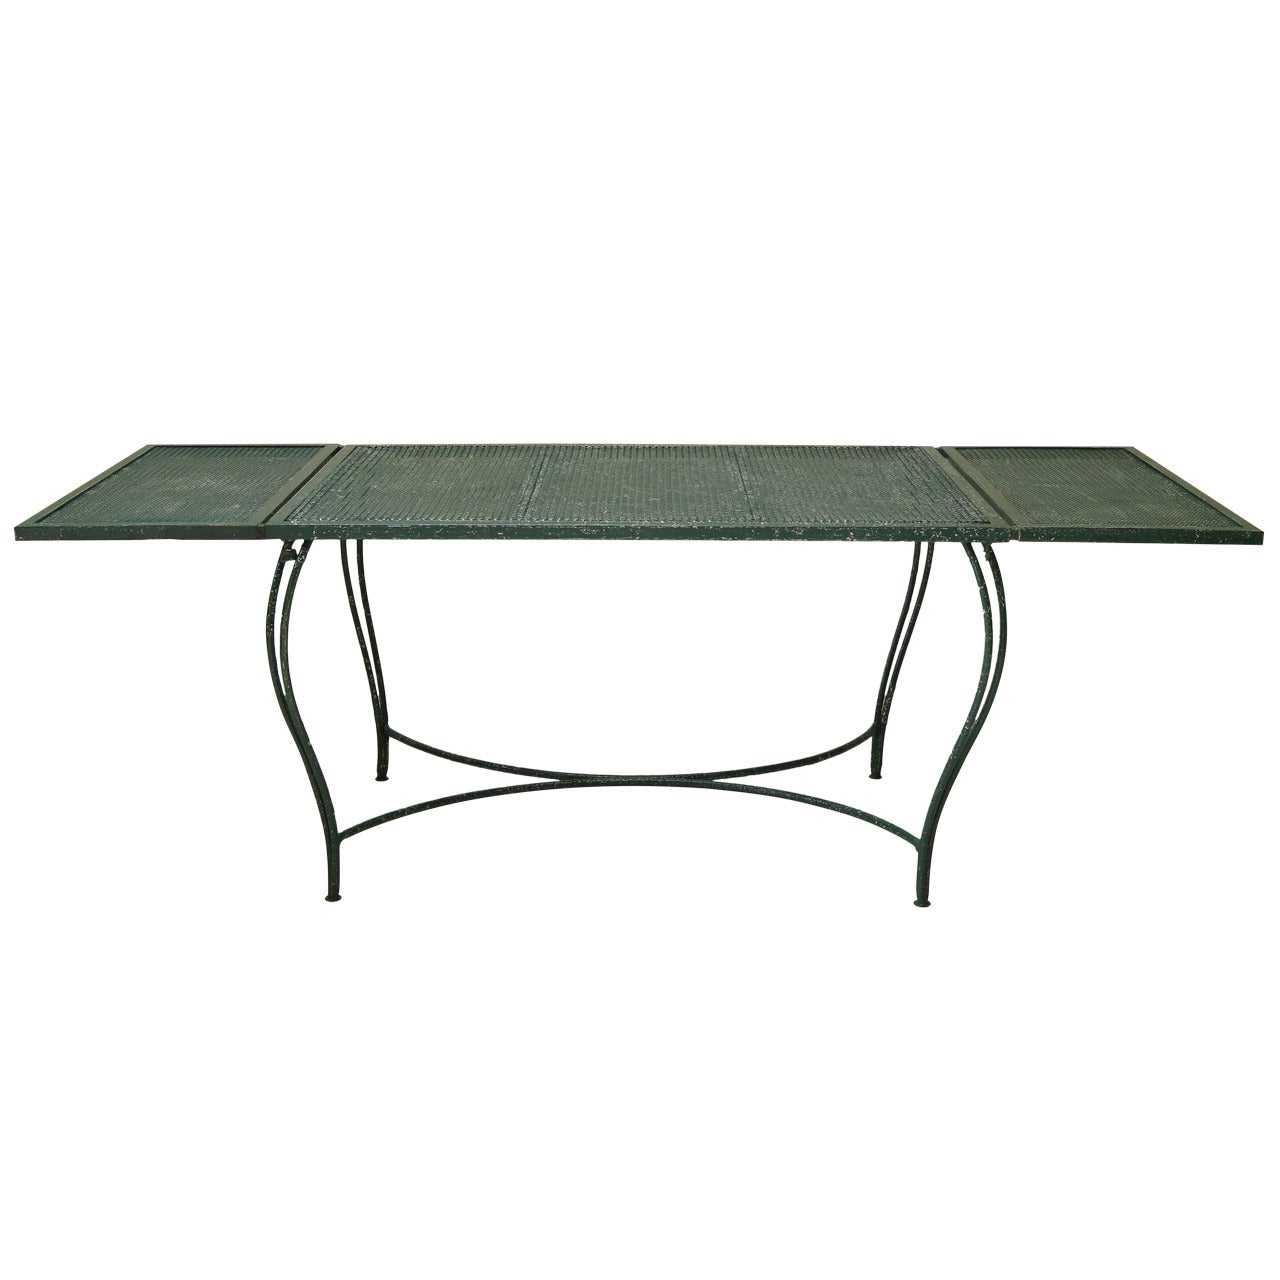 Wrought Iron Garden Dining Table - France, 1950s